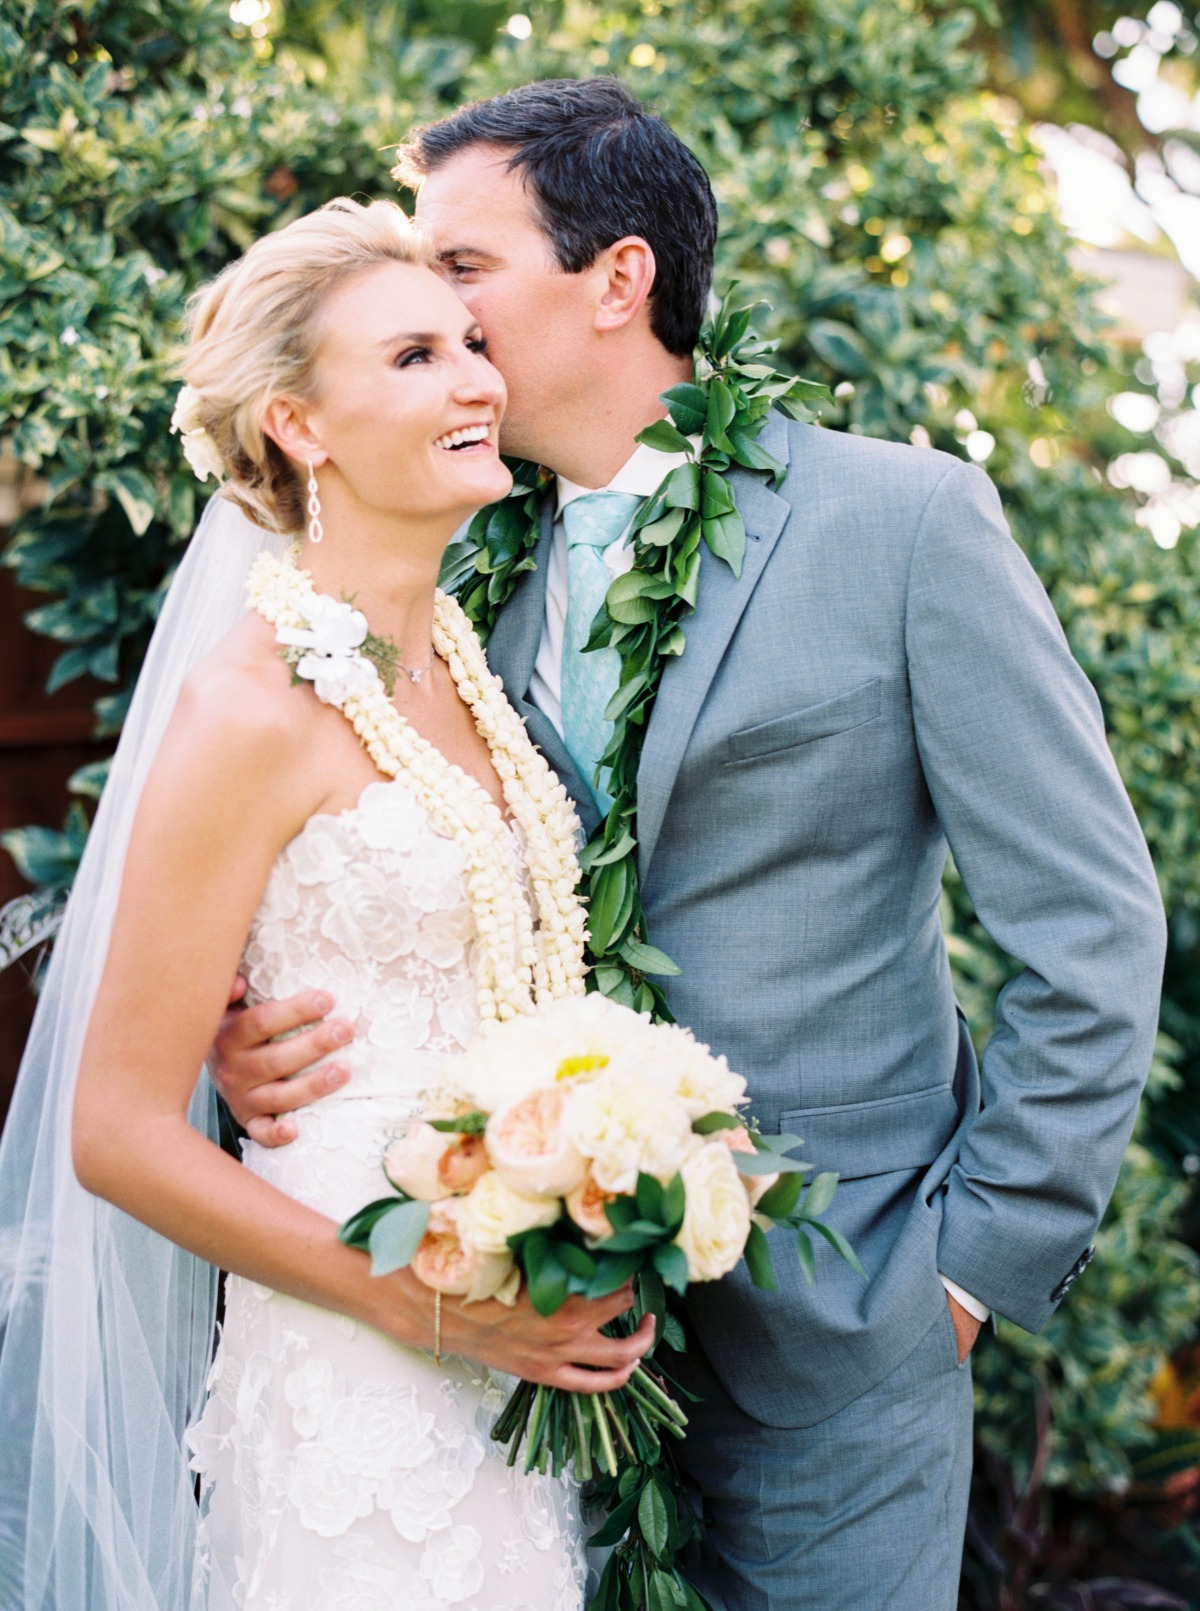 How To Have the Perfect Backyard Wedding in Hawaii